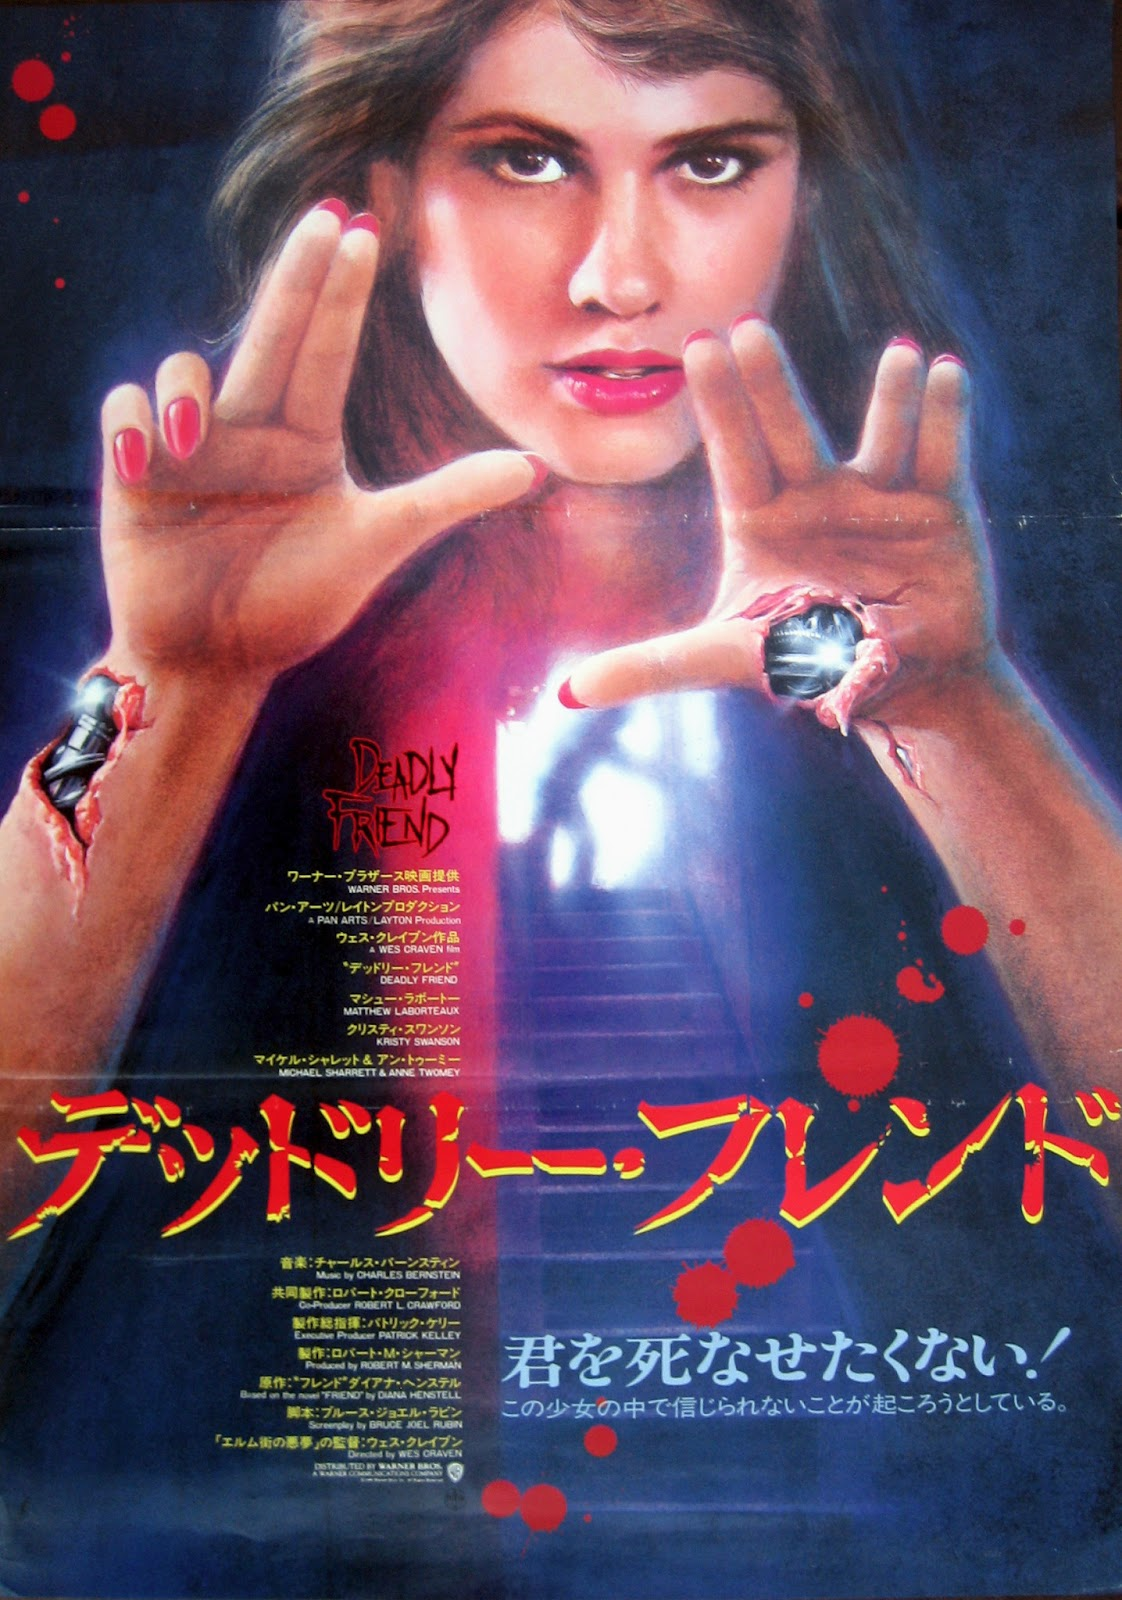 Deadly Friend Japanese Poster